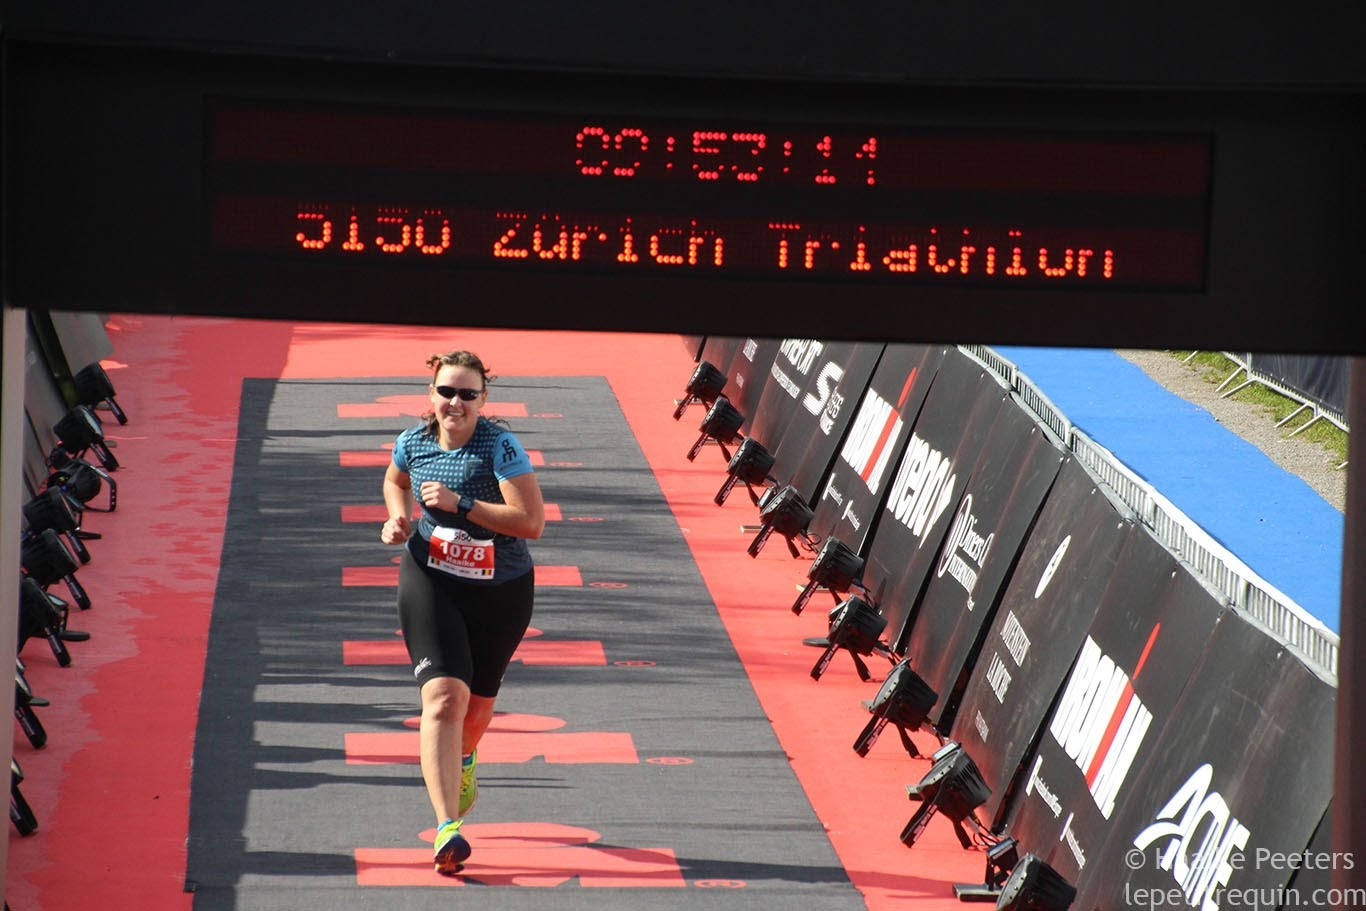 Zürich Triatlon (Le petit requin)